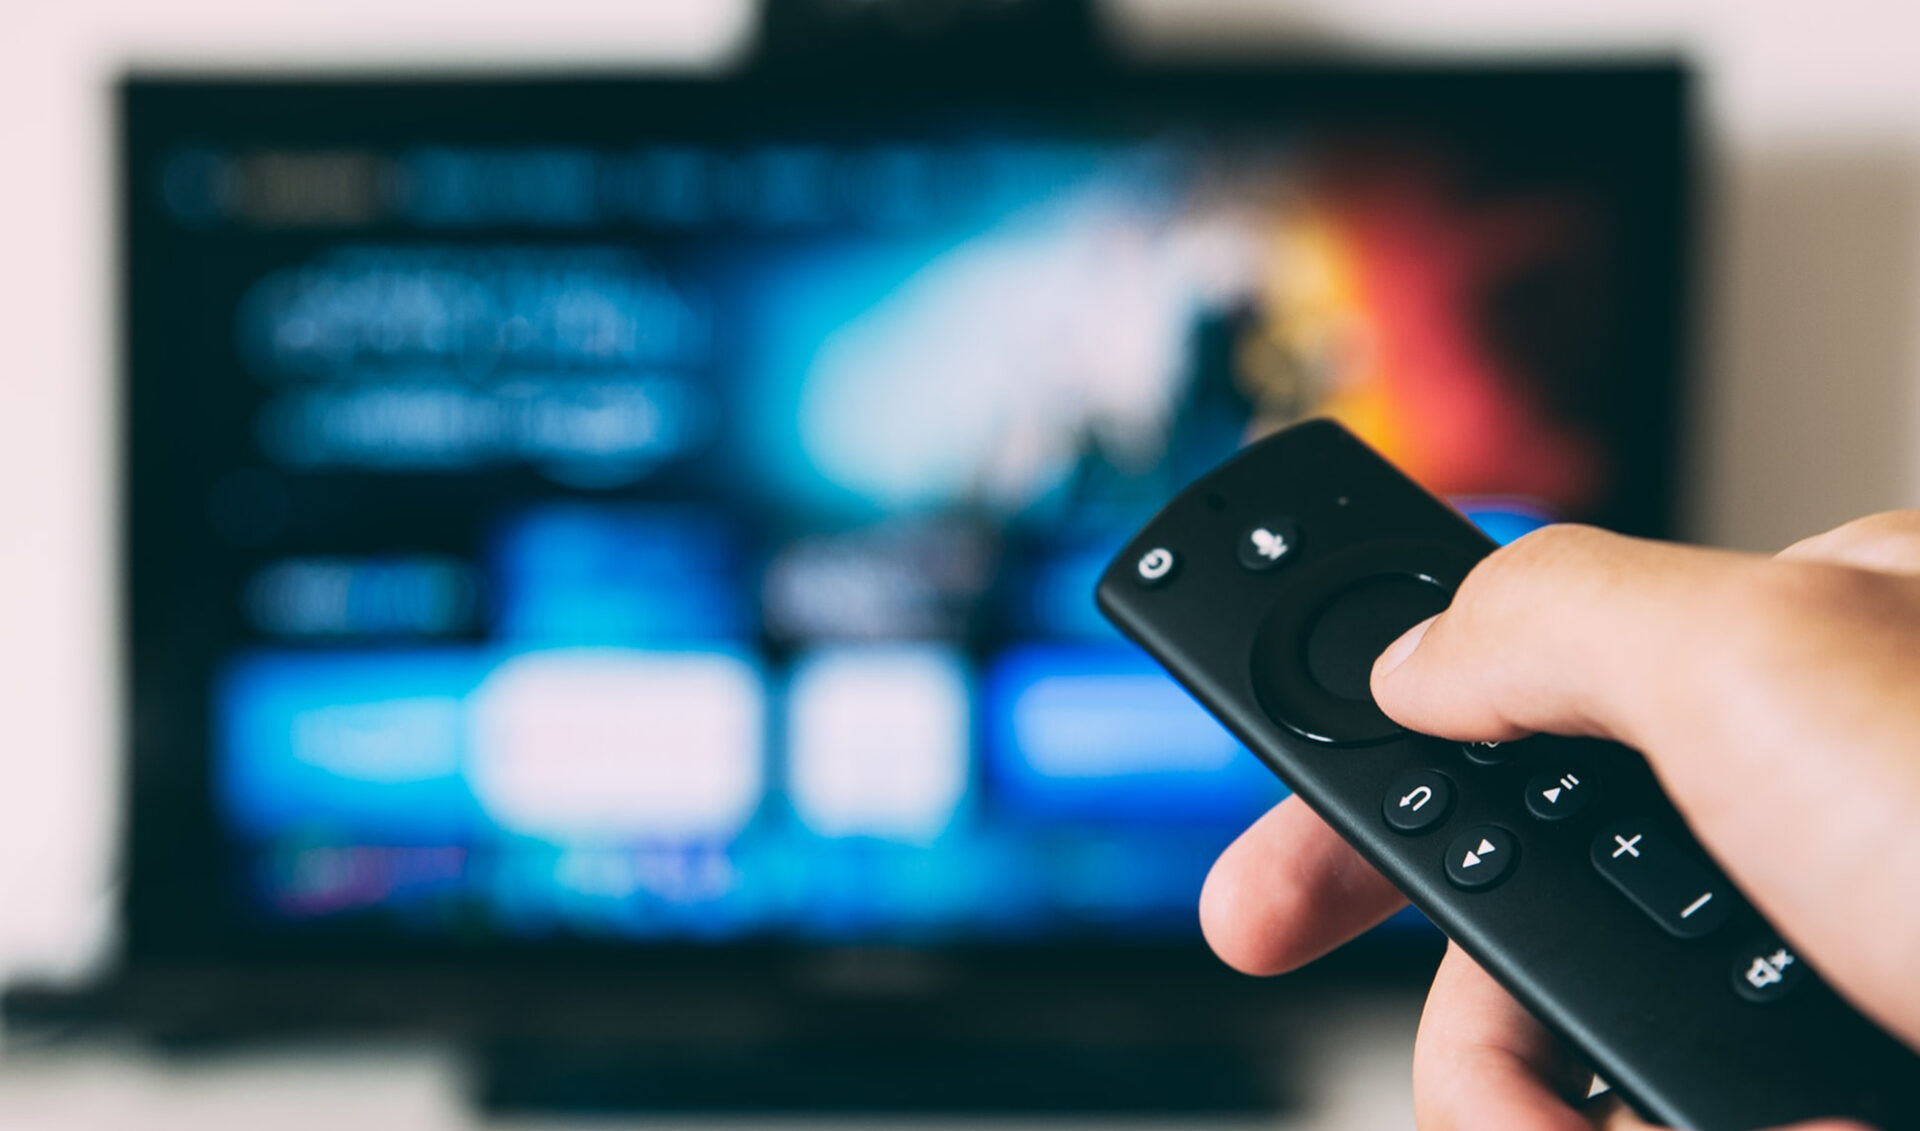 Videos On YouTube And Facebook Get 70% As Much Viewership As Linear TV Shows (Report)